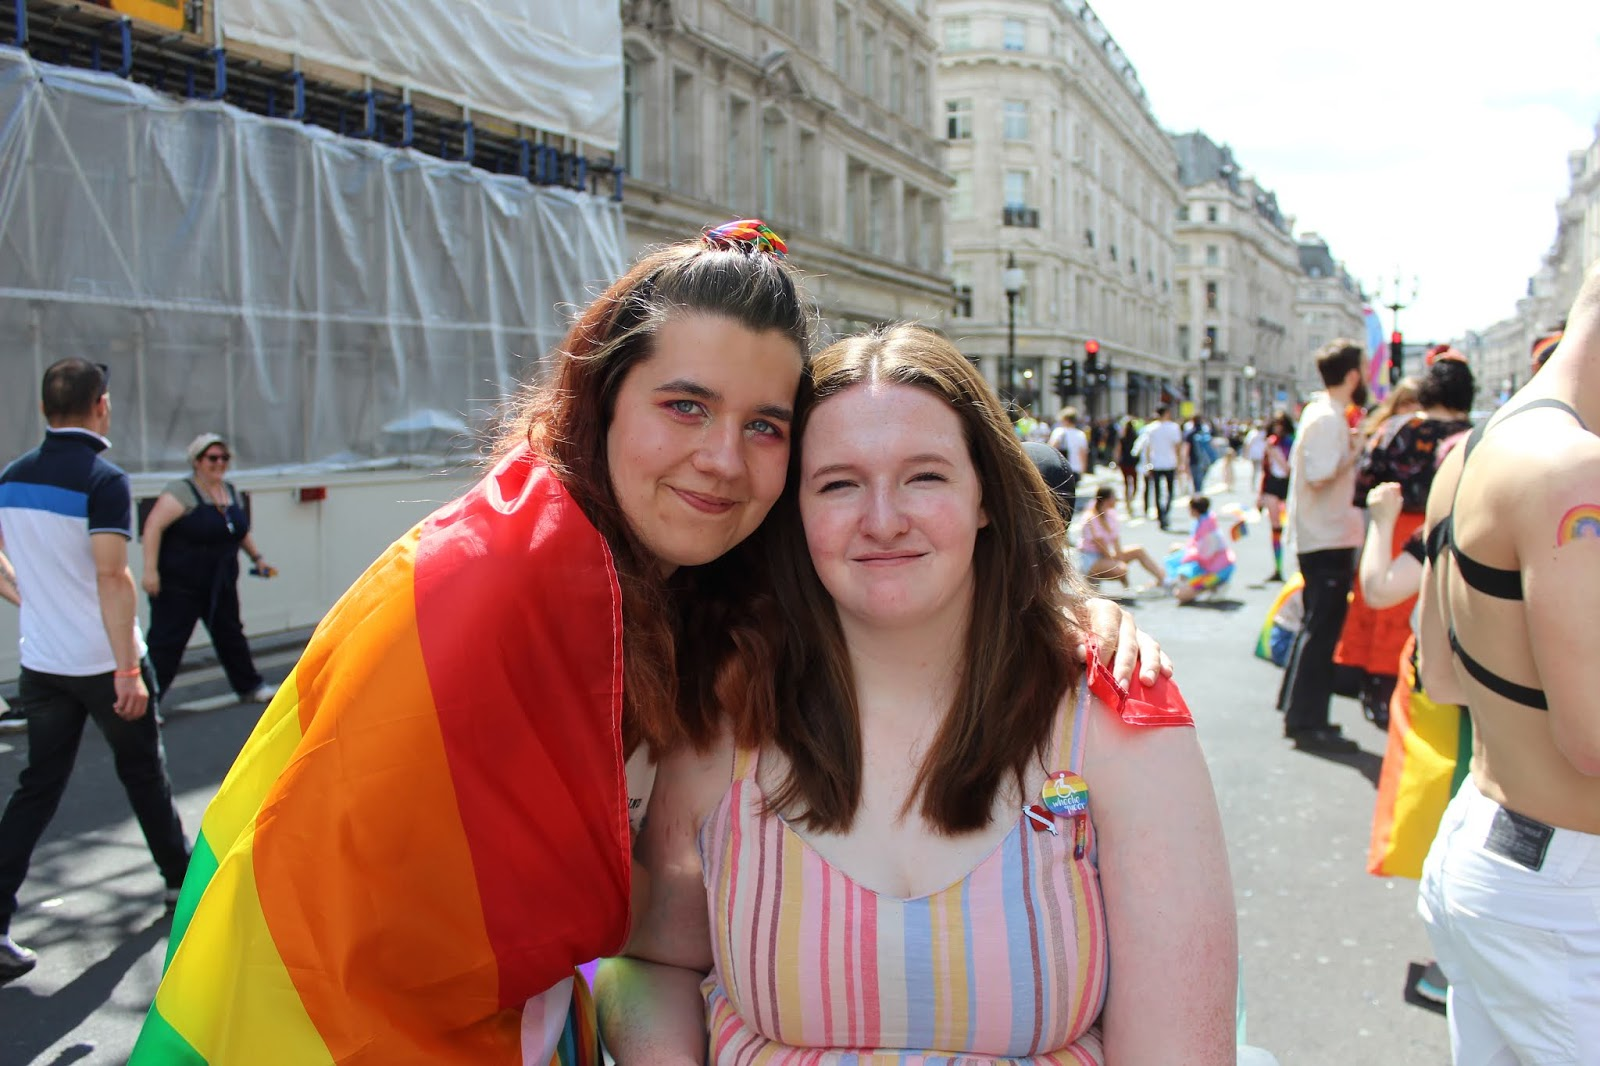 2 women at London Pride, they have a pride flag drapped across them both.